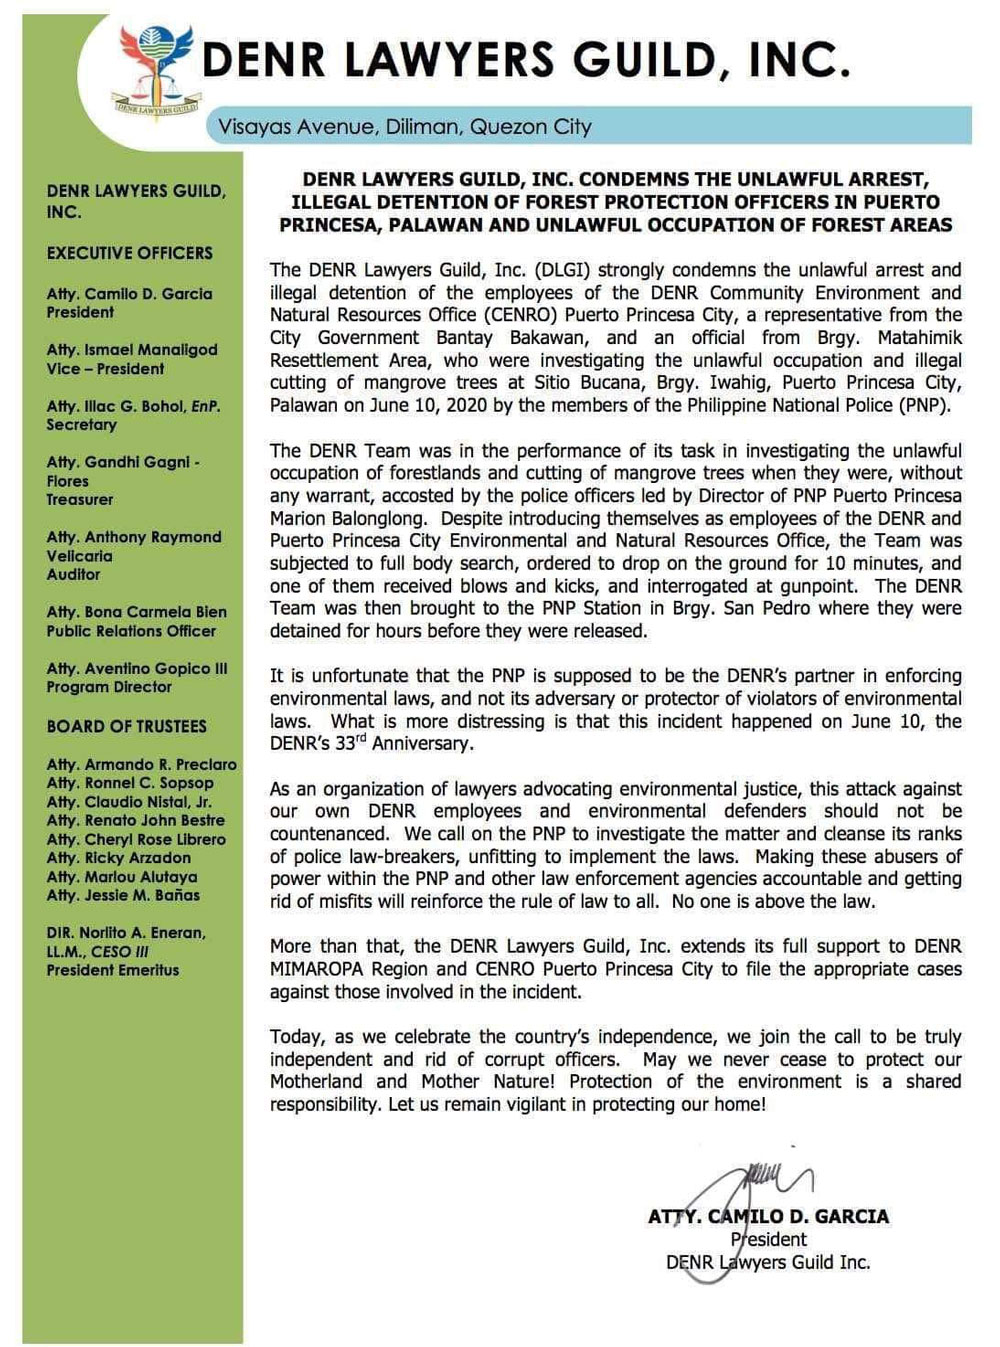 DENR Lawyers Guild Statement on Palawan web